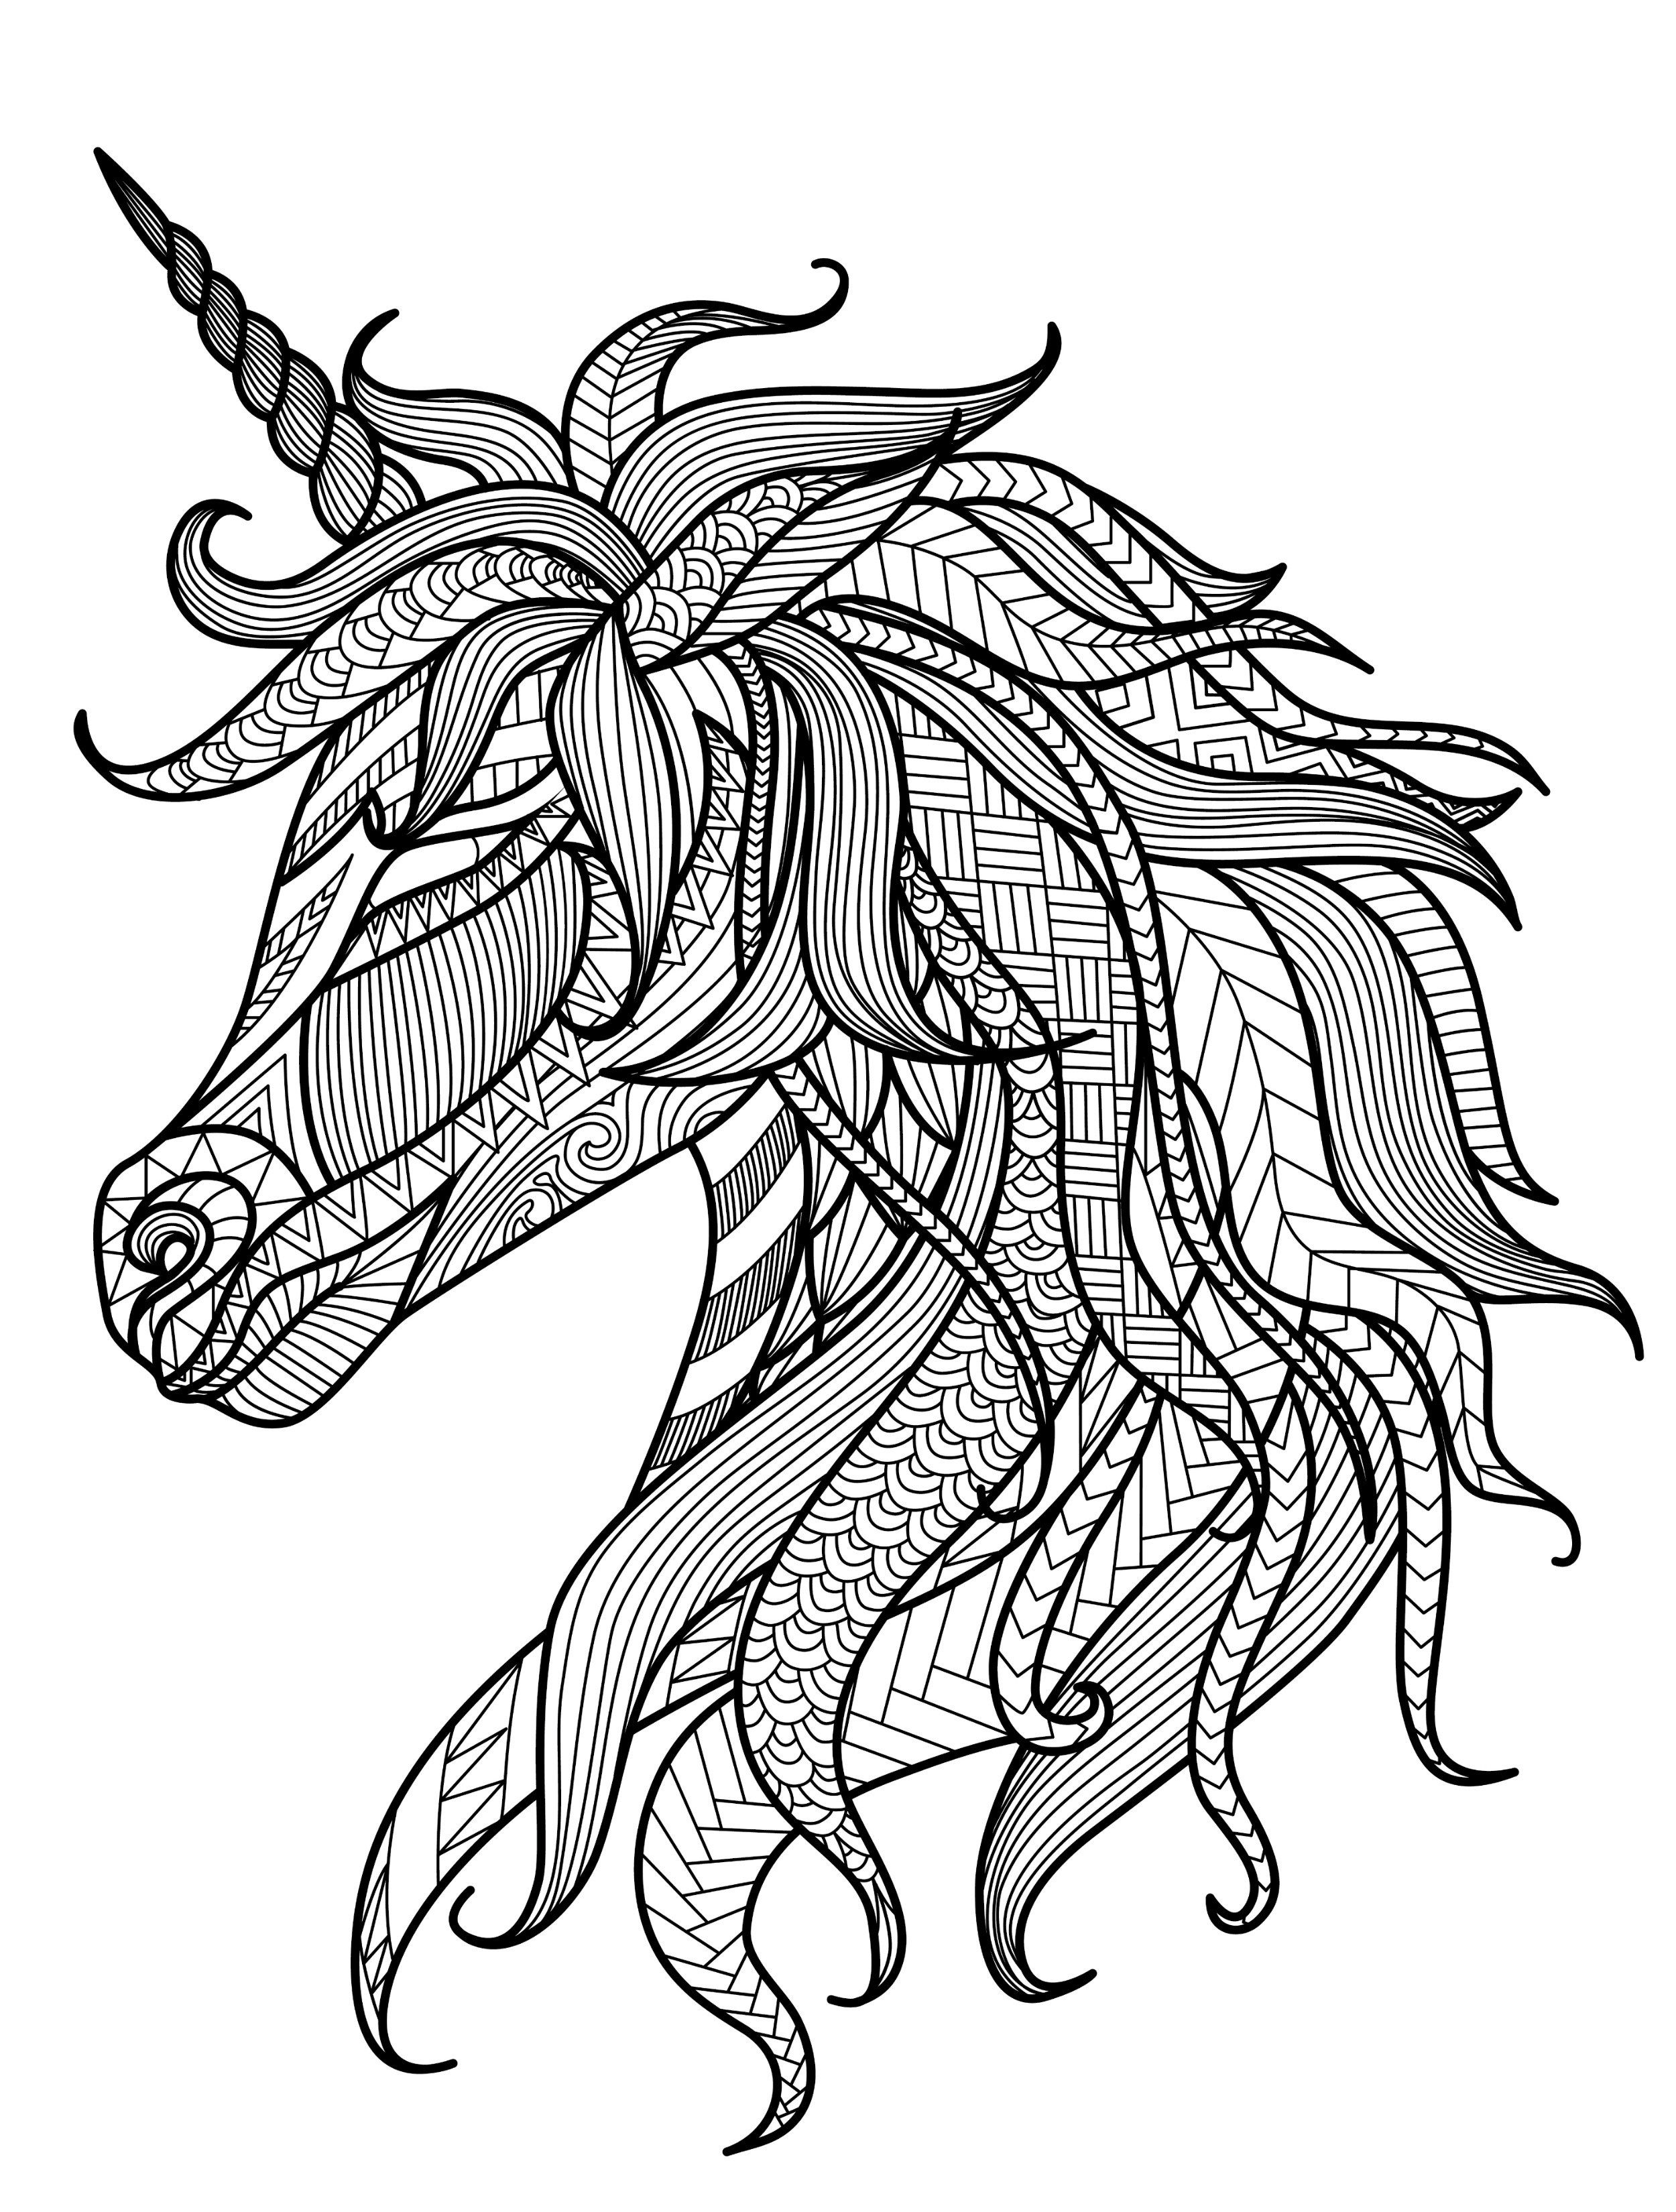 downloadable coloring pages Unicorn adult coloring page   free downloadable | coloring pages  downloadable coloring pages